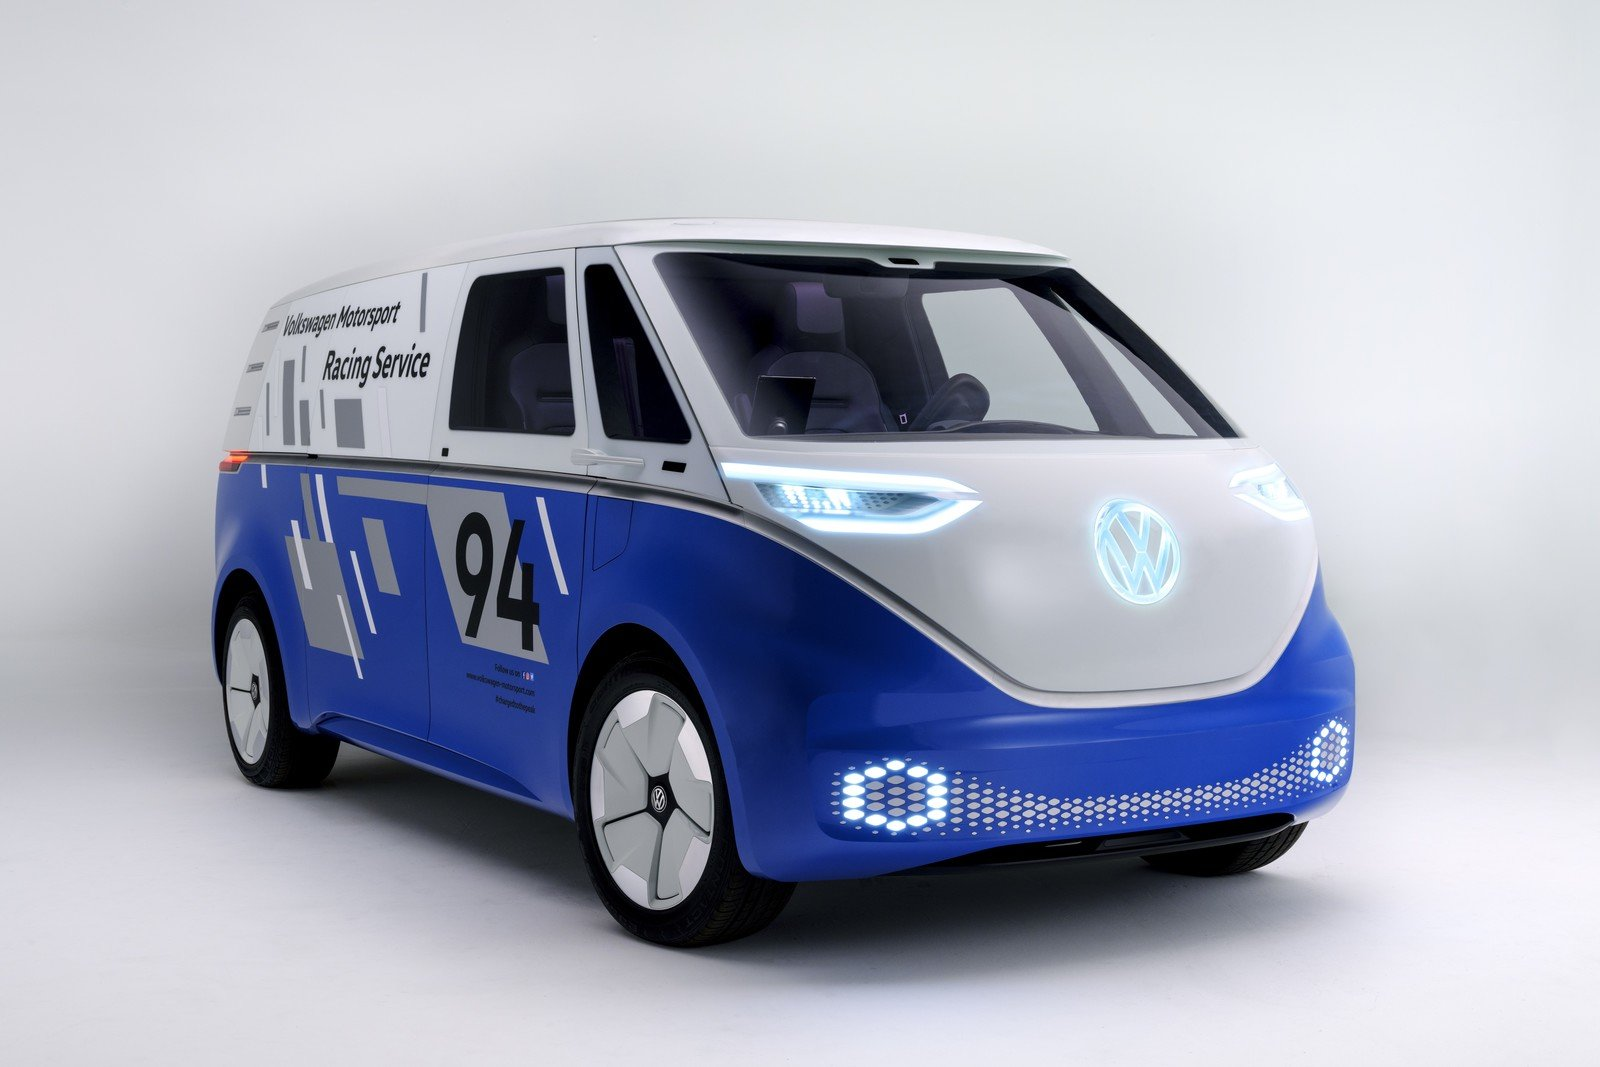 Moving Towards Electric Cars Volkswagen Plans A 6 Cut Of